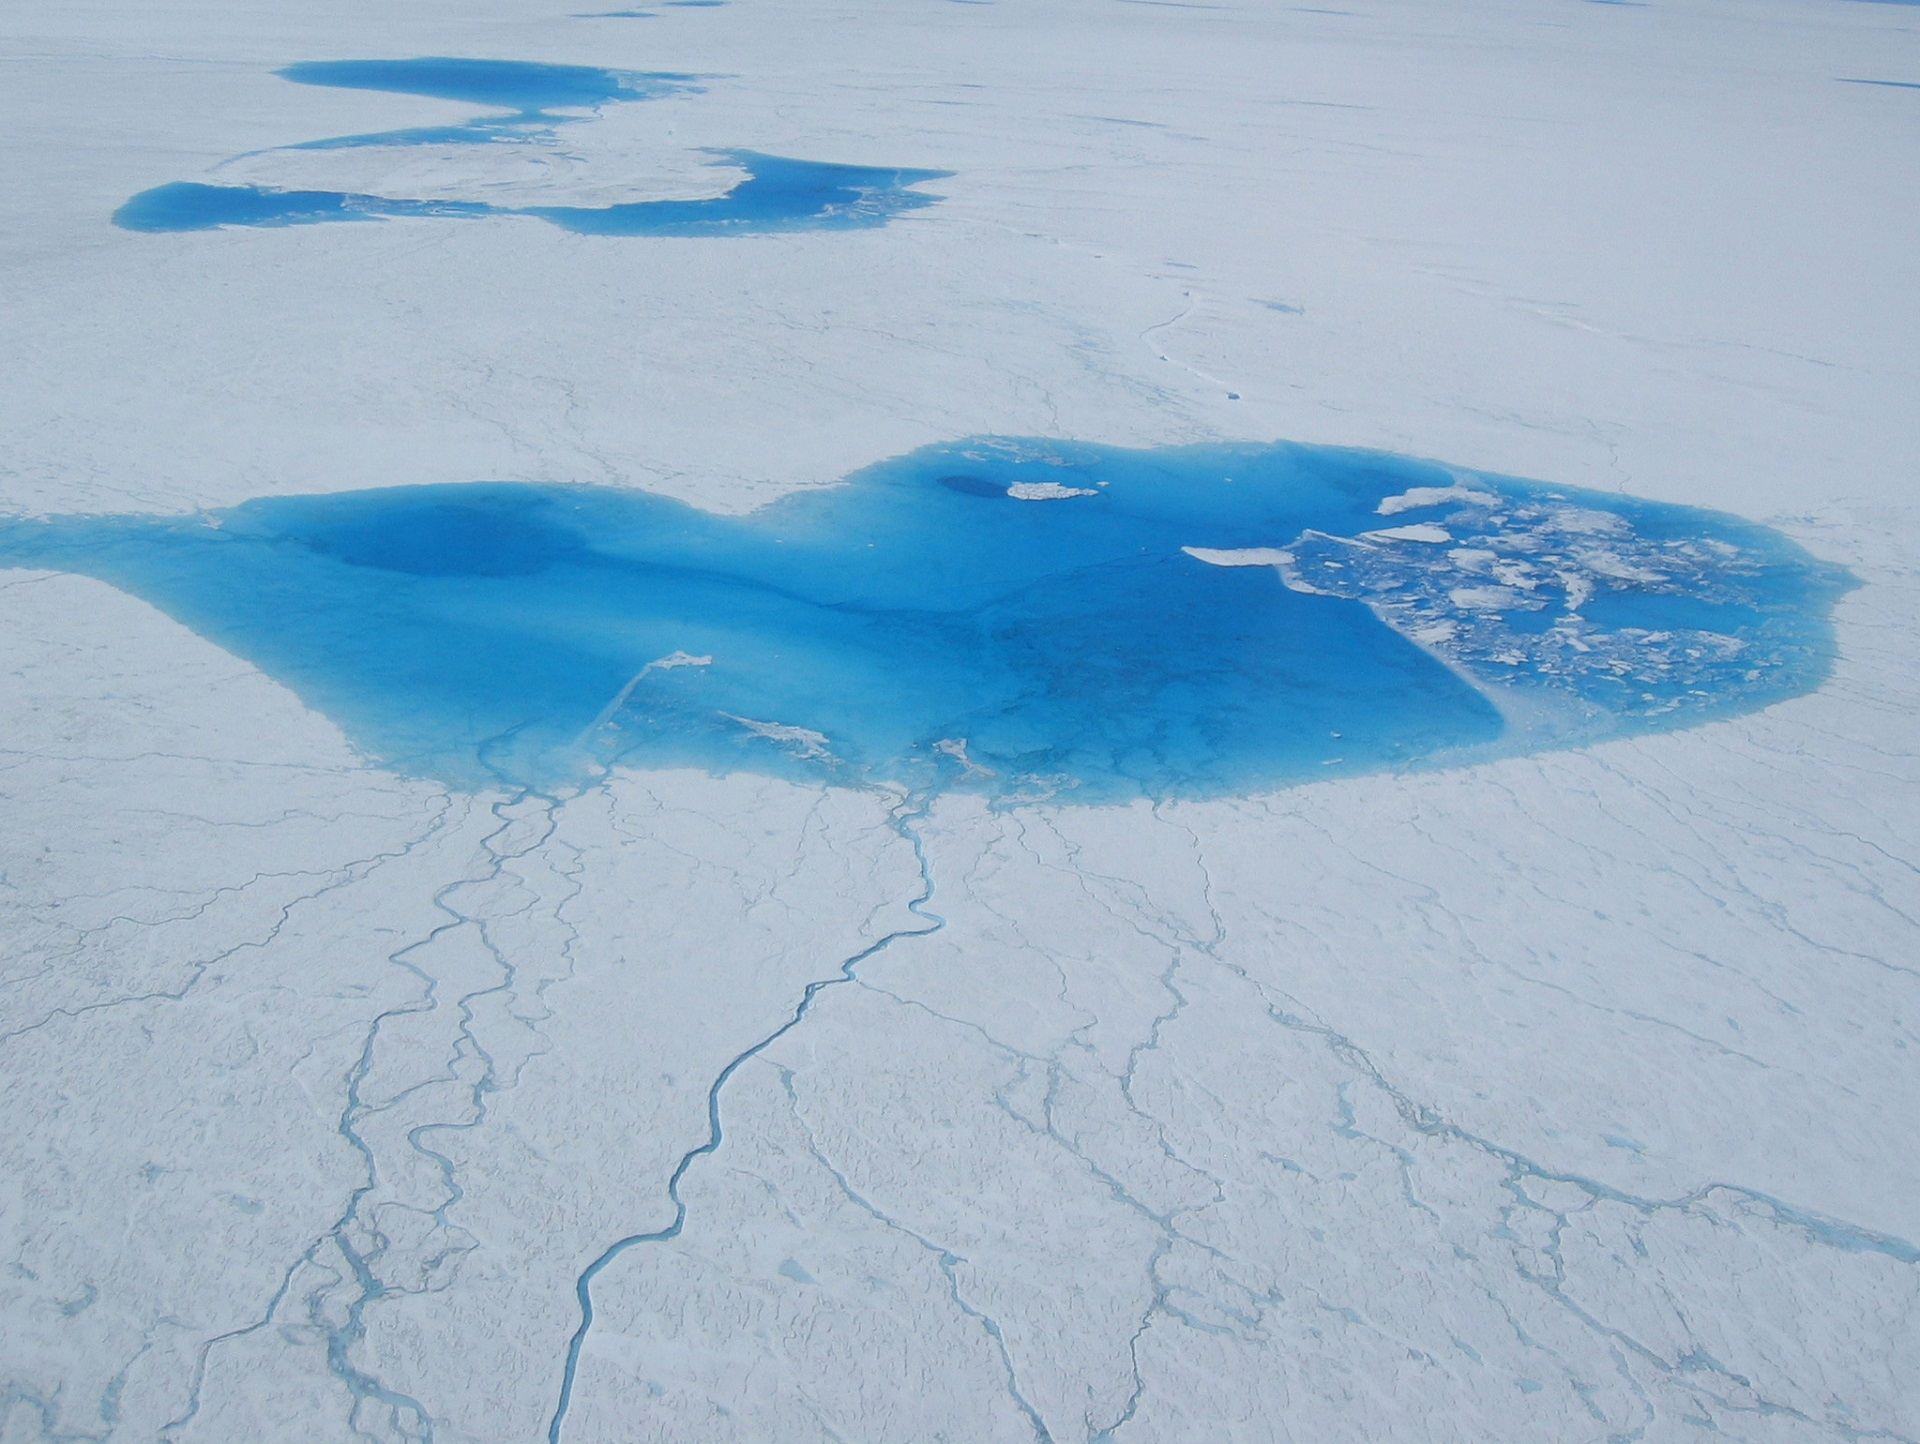 Surface lakes in Greenland. Photo: Joughin/UW Polar Science Center.